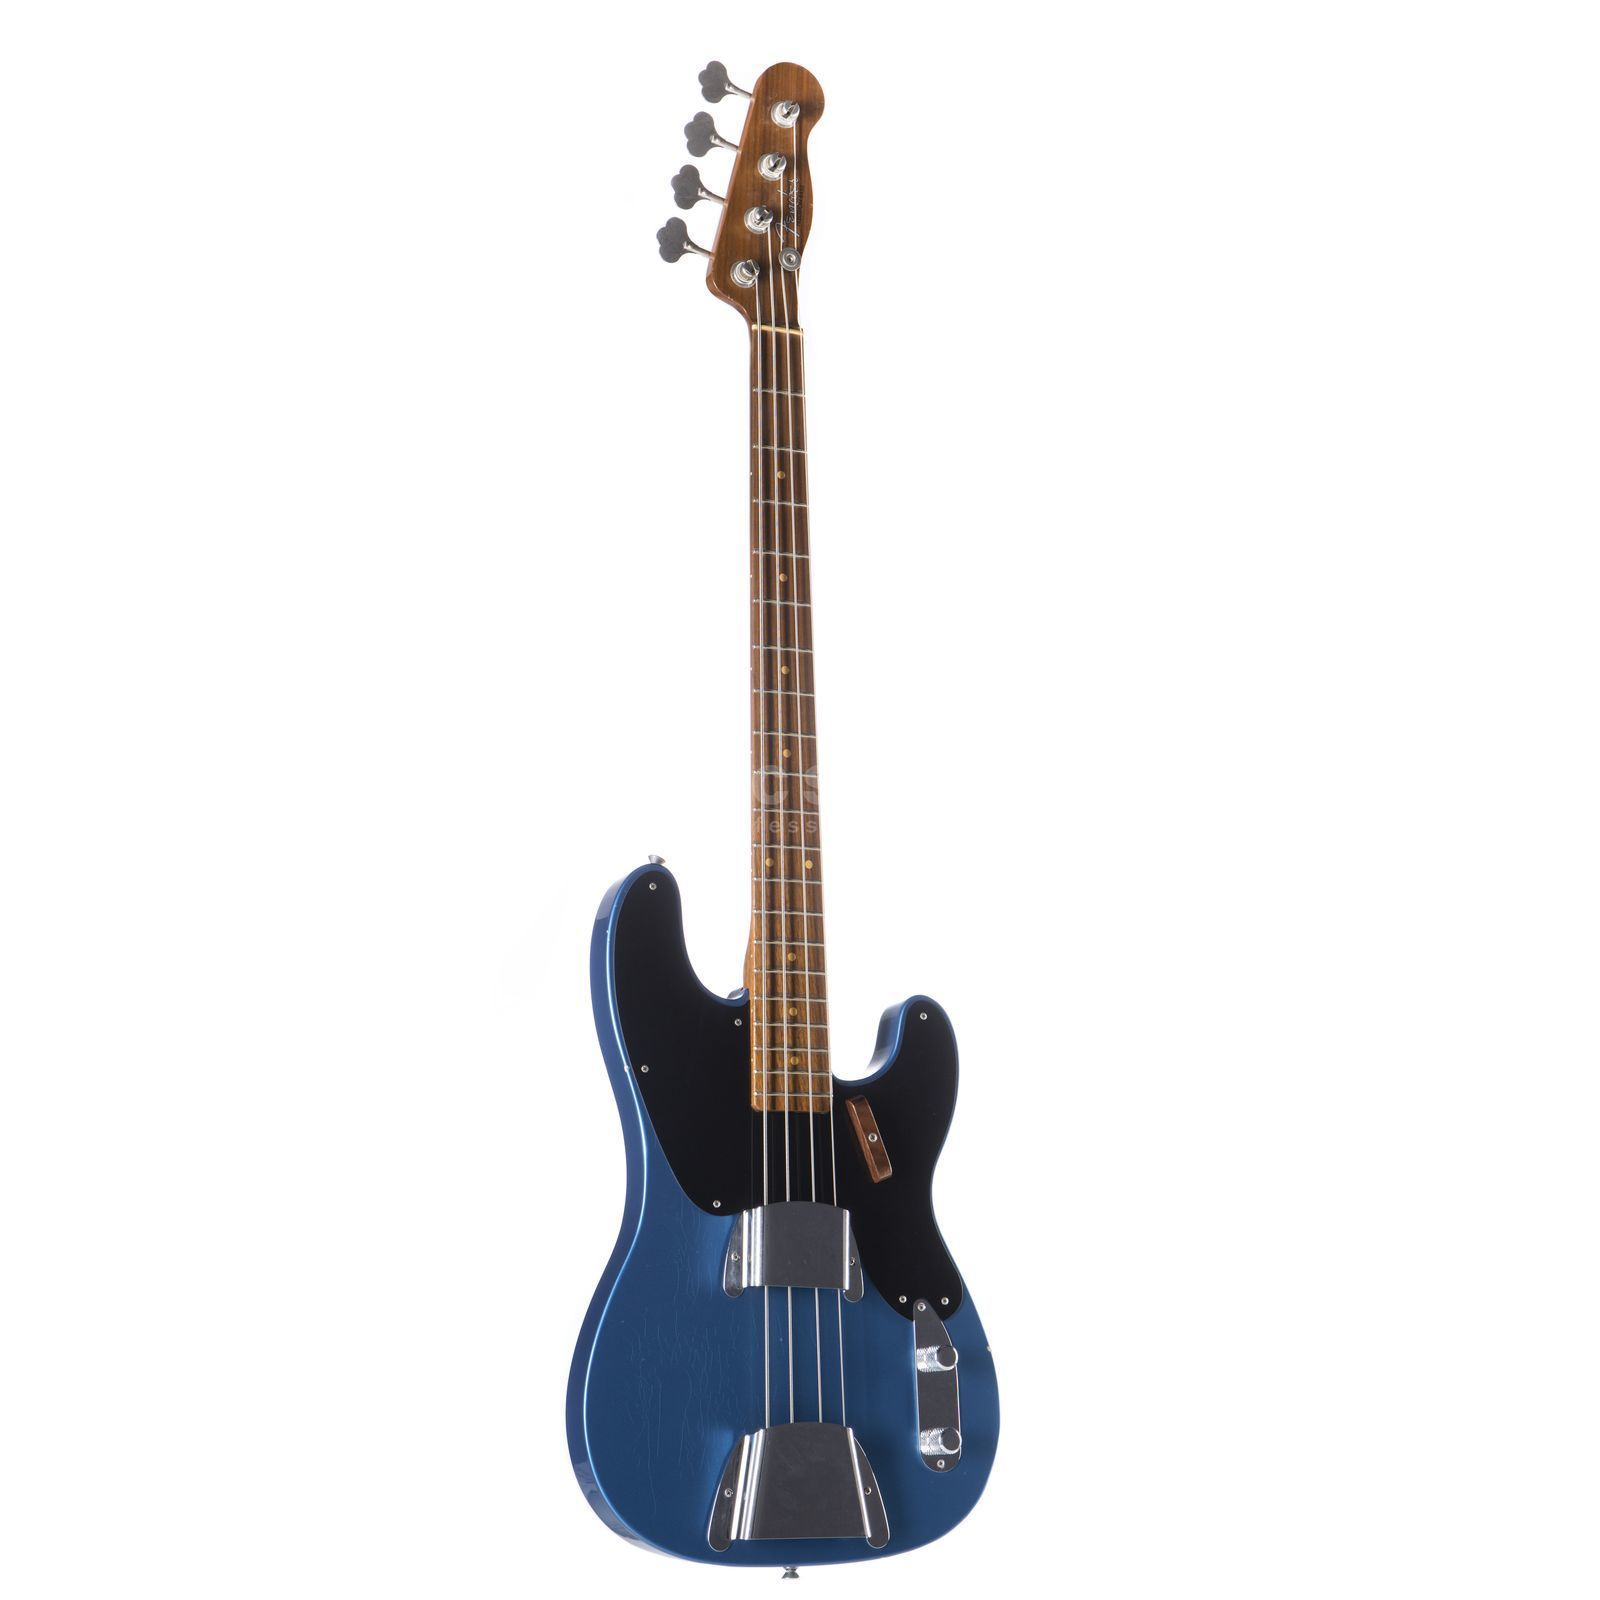 Fender 1951 Precision Bass Closet Classic Lake Placid Blue MB Dennis Galuszka #2759 Product Image